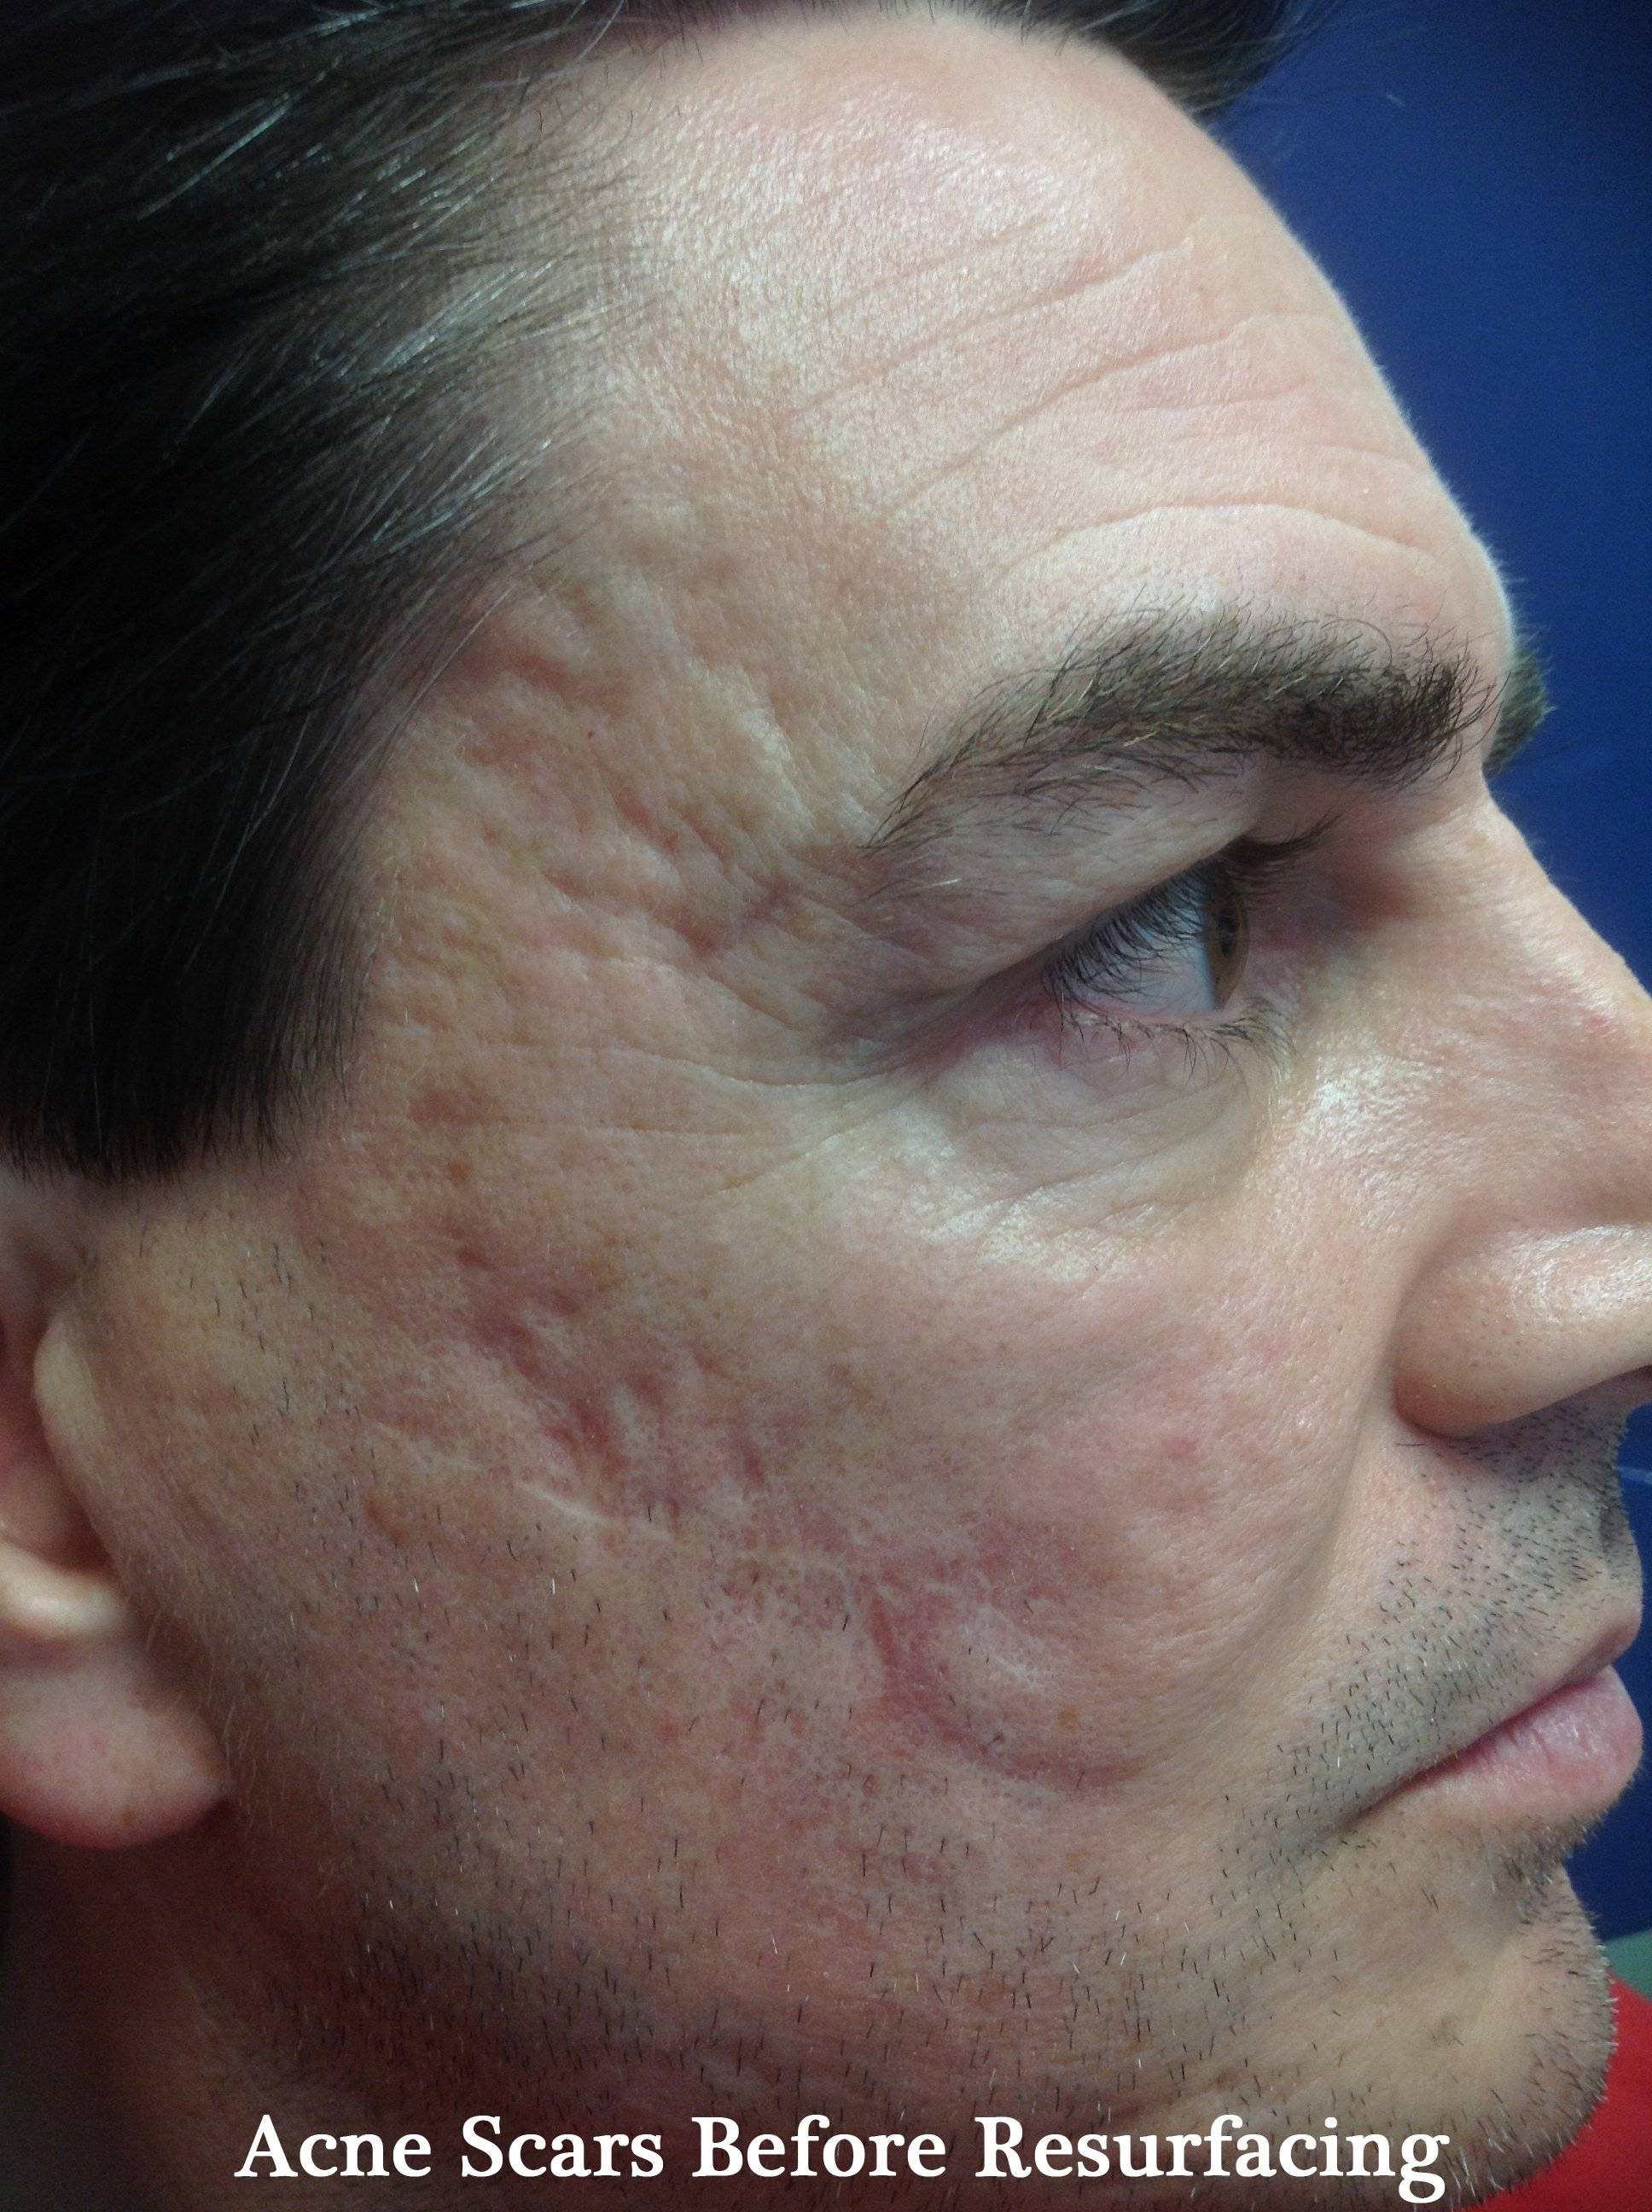 acne scarring before resurfacing